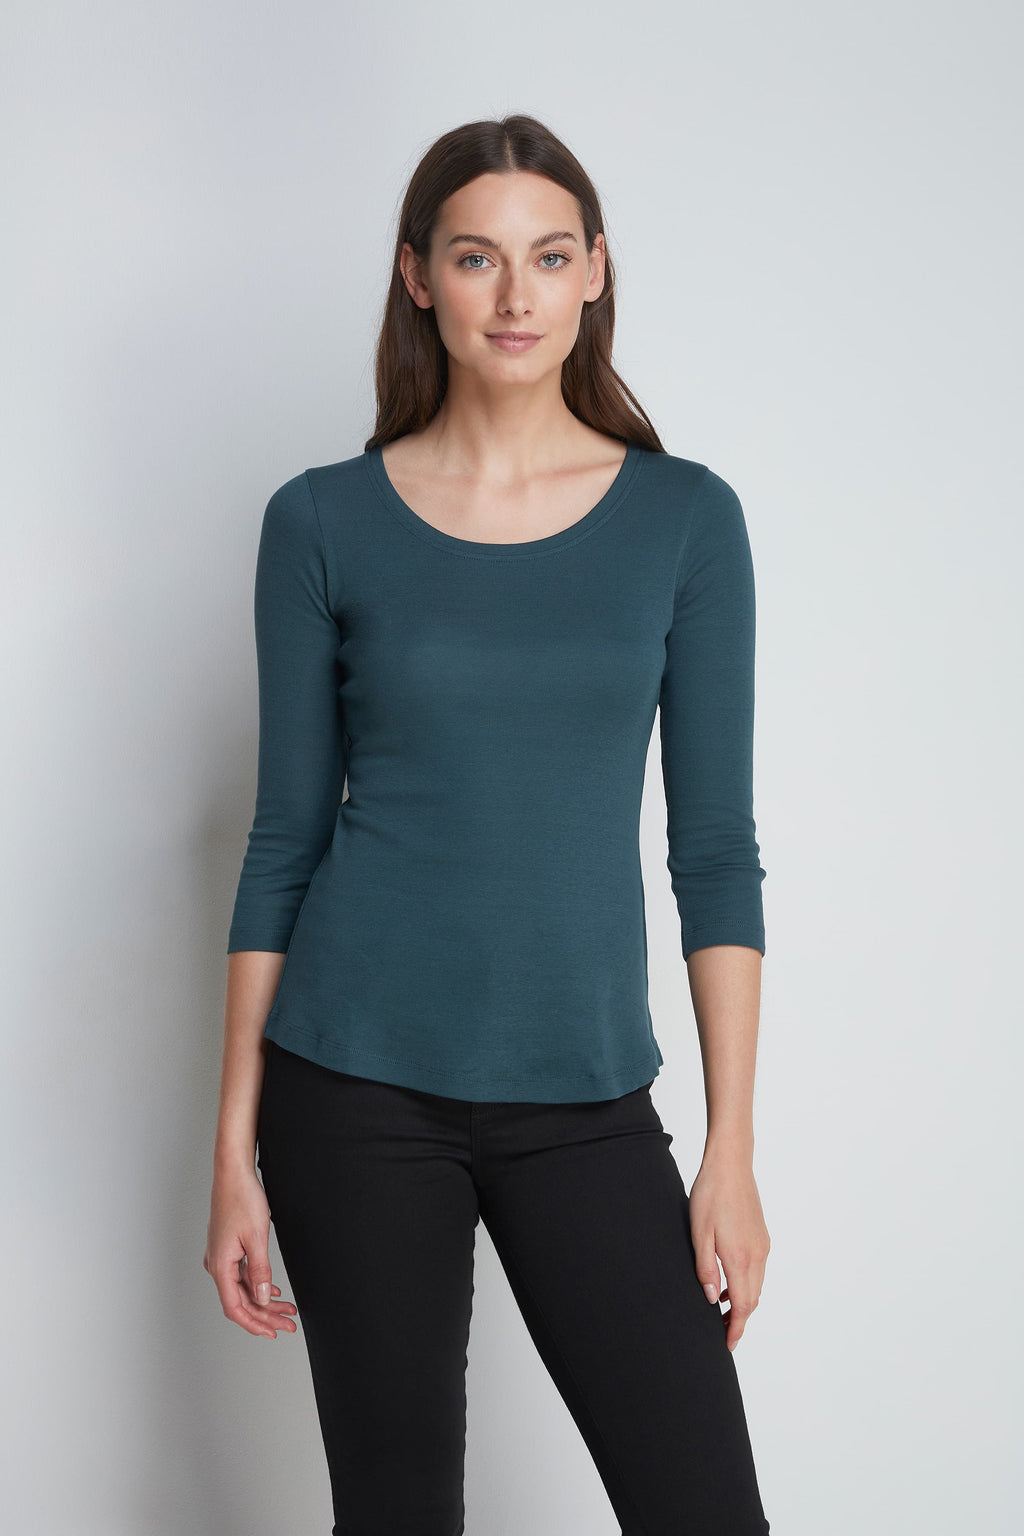 Comfortable Green 3/4 Length Scoop Neck T-Shirt - Cotton Jersey Durable T-Shirt - Flattering Scoop Neck